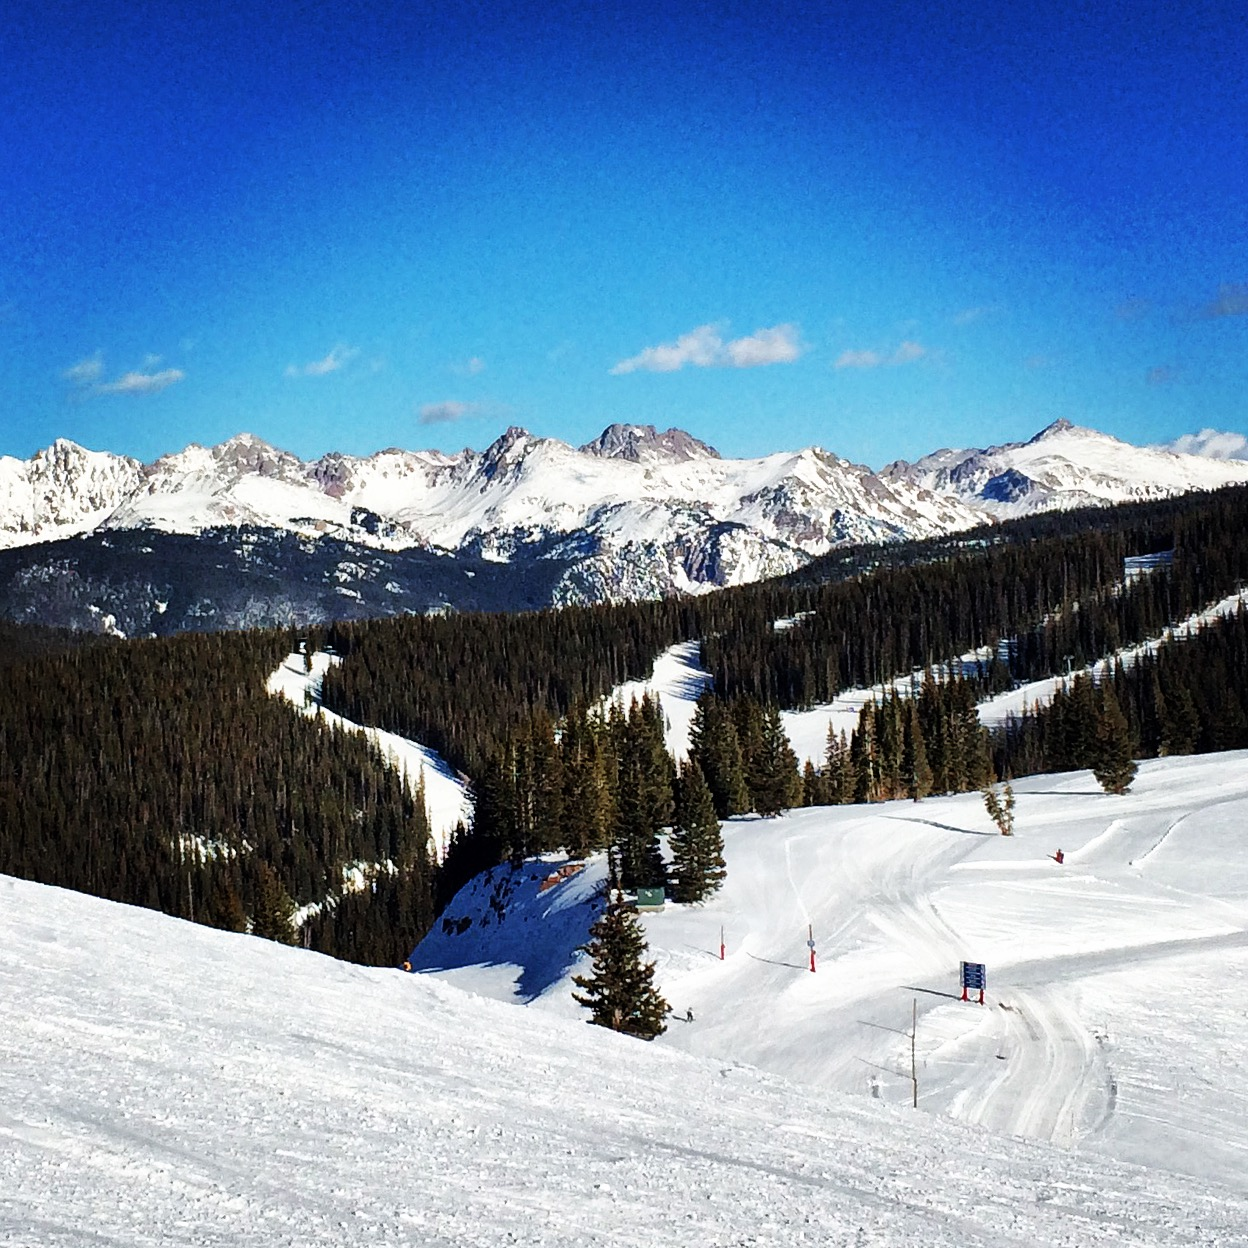 16 Things To Do In Vail Beyond Skiing: Chronicling My Adventures In The